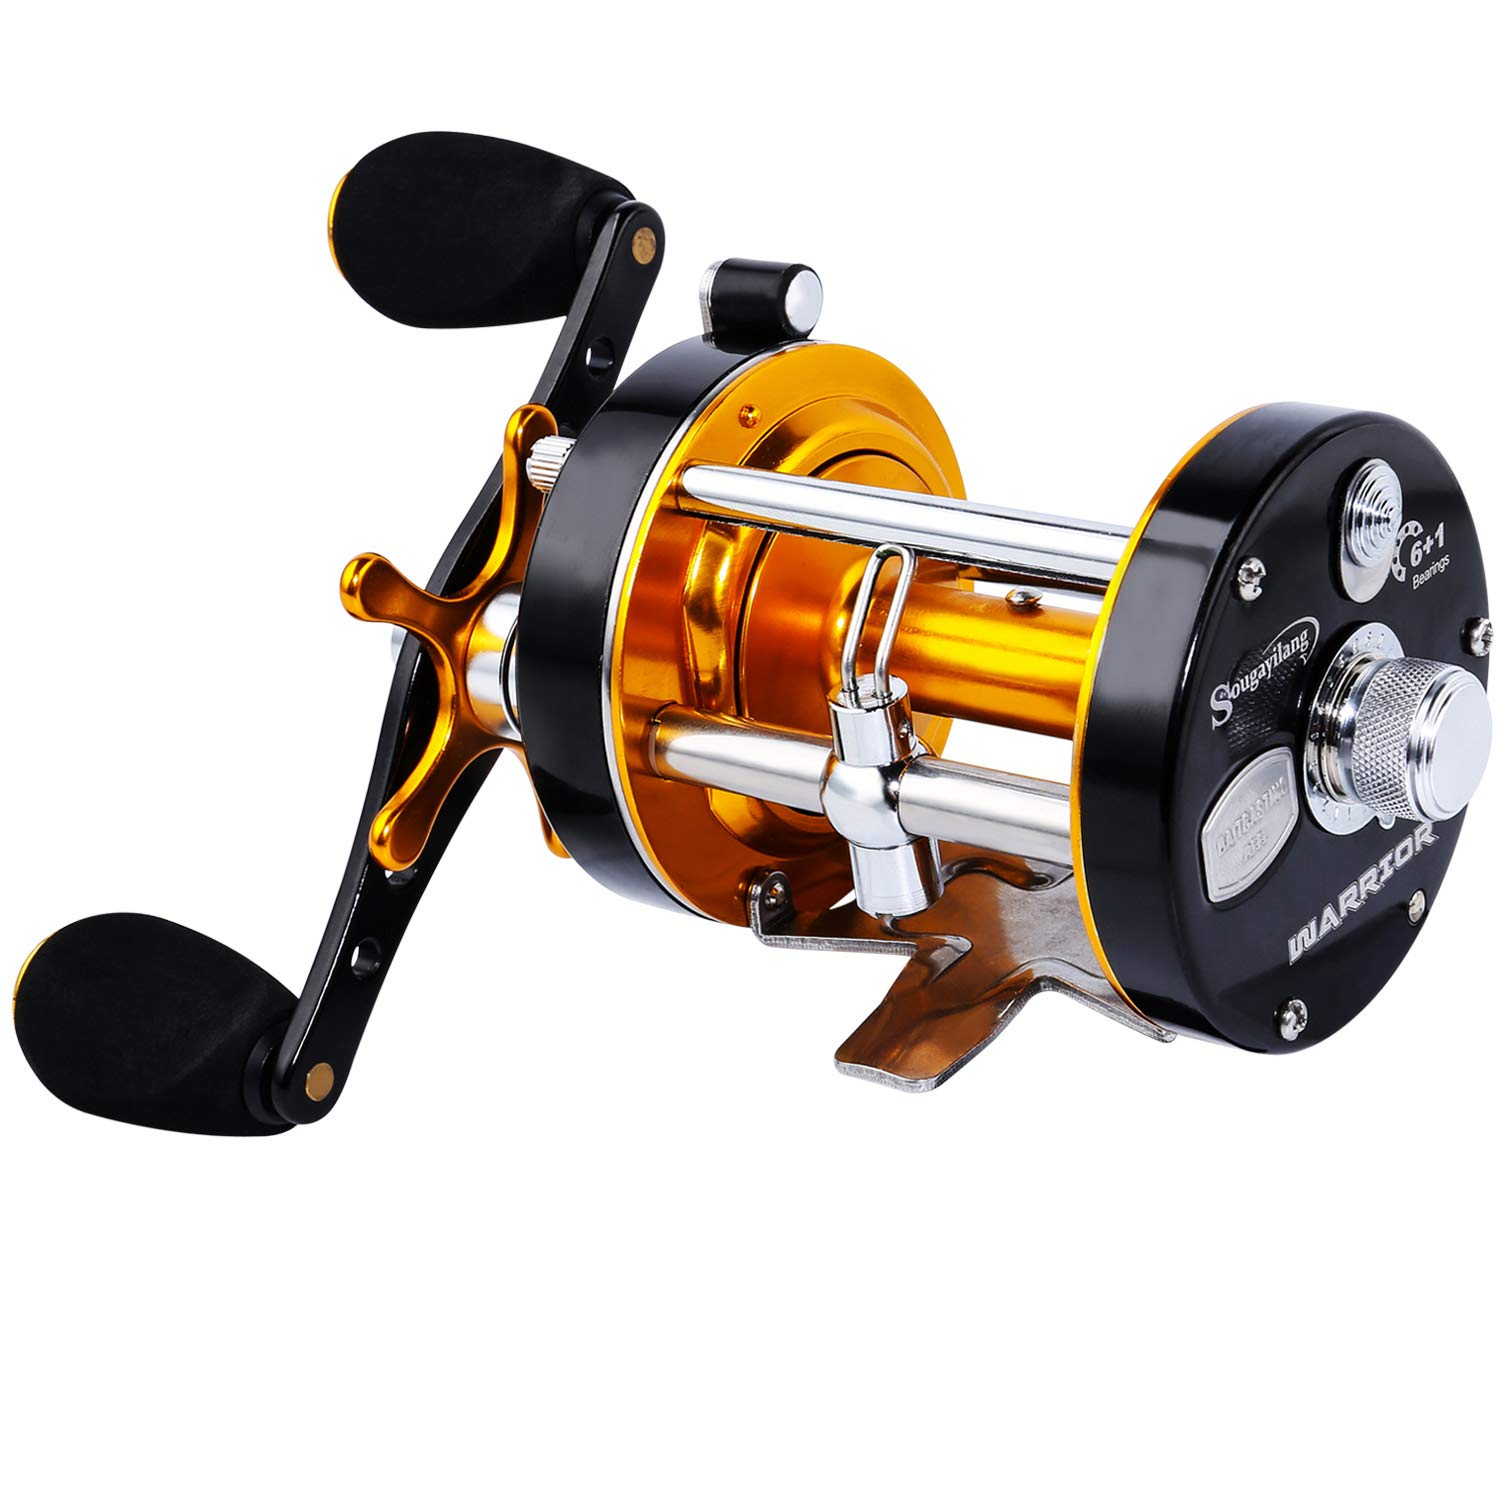 Sougayilang Warrior 4000 baitcasting reel under 100